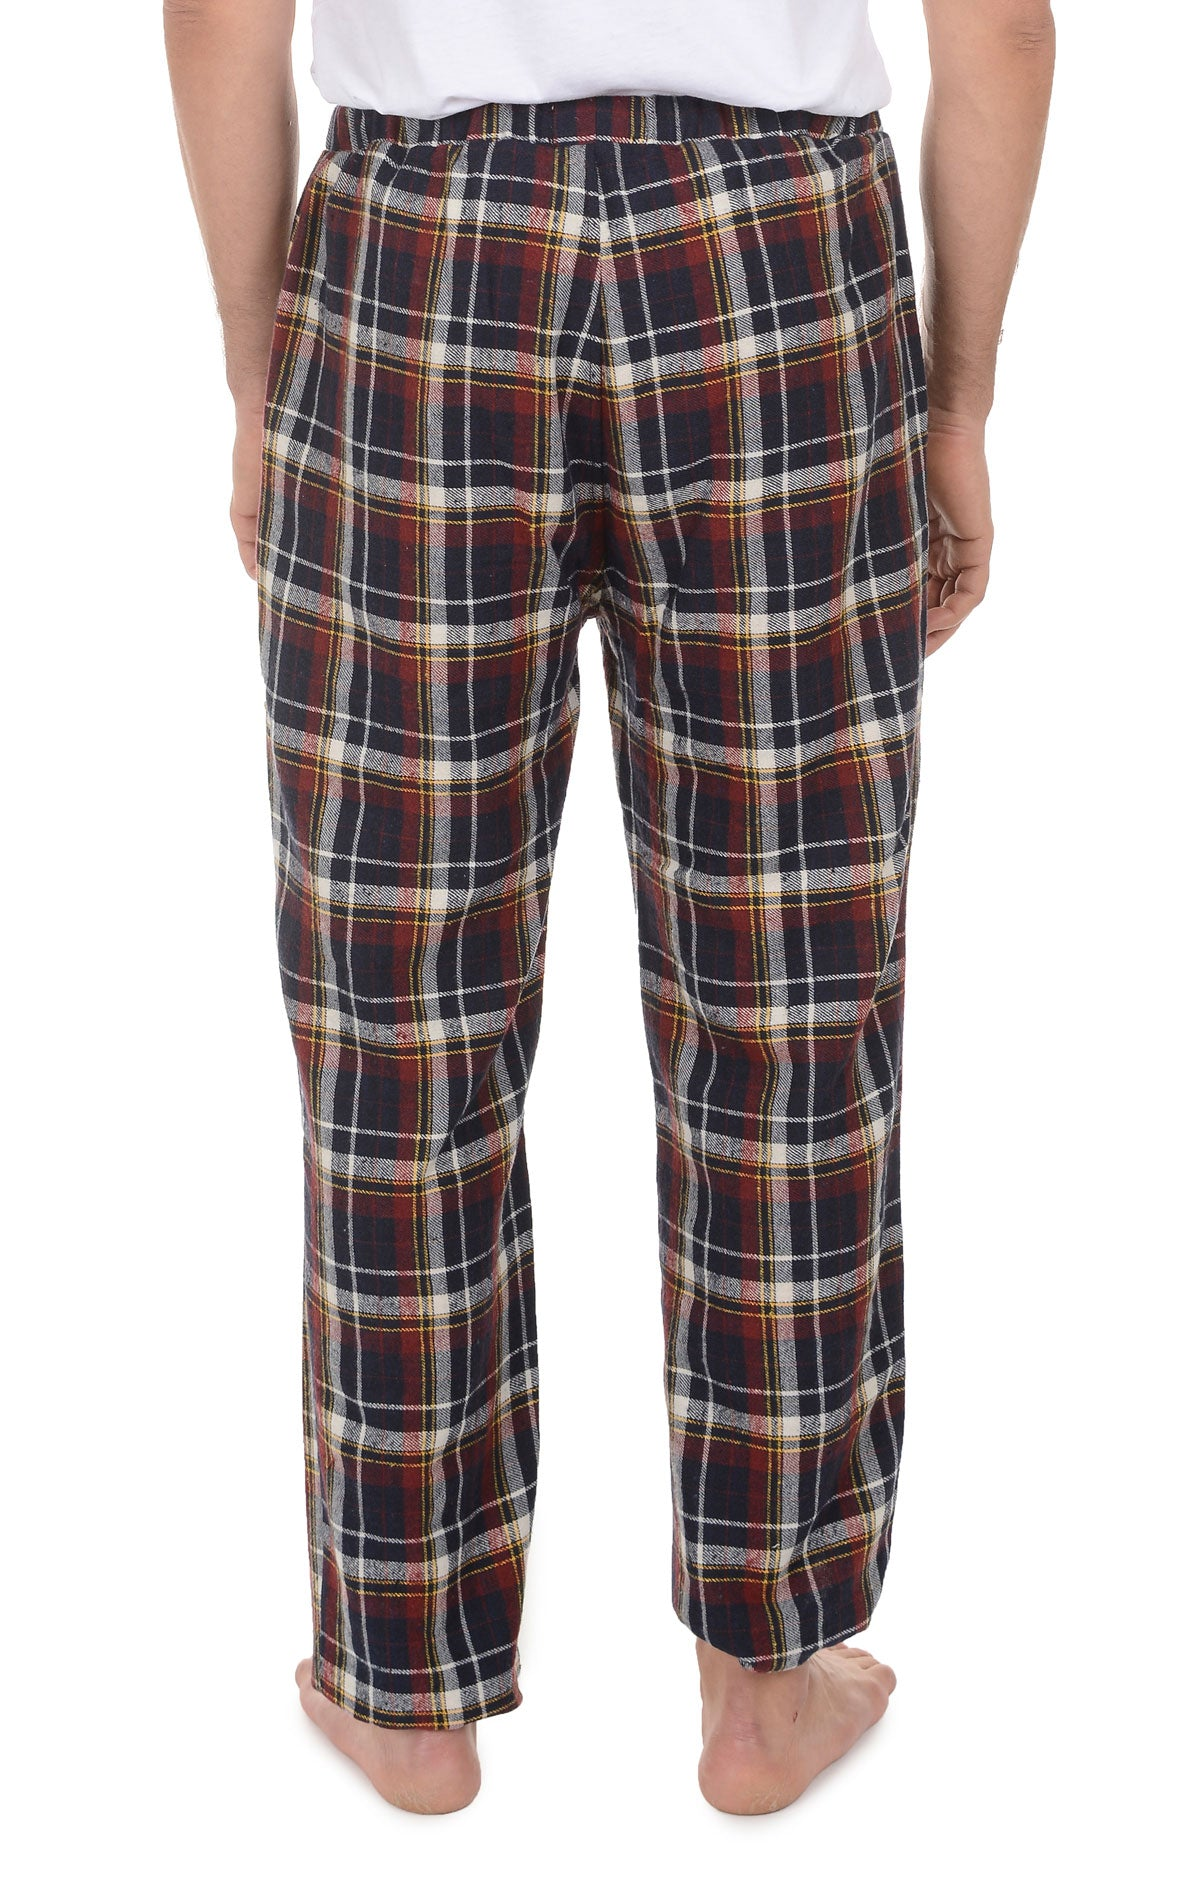 Navy and Brown Plaid Flannel Pajama Pant - jachs